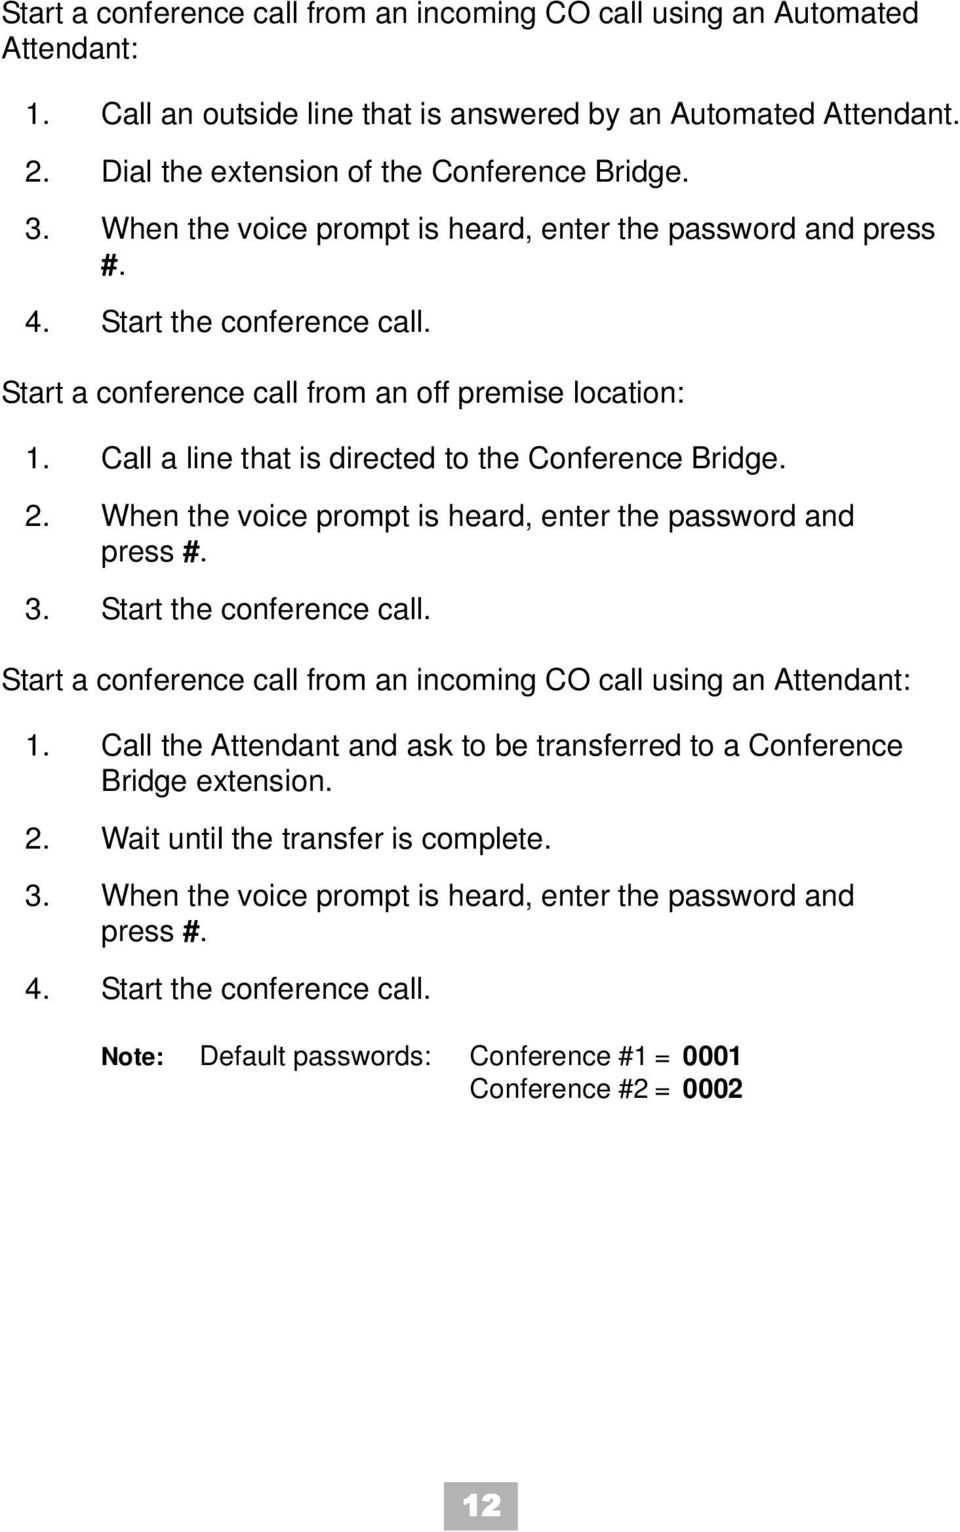 Call a line that is directed to the Conference Bridge. 2. When the voice prompt is heard, enter the password and press #. 3. Start the conference call.